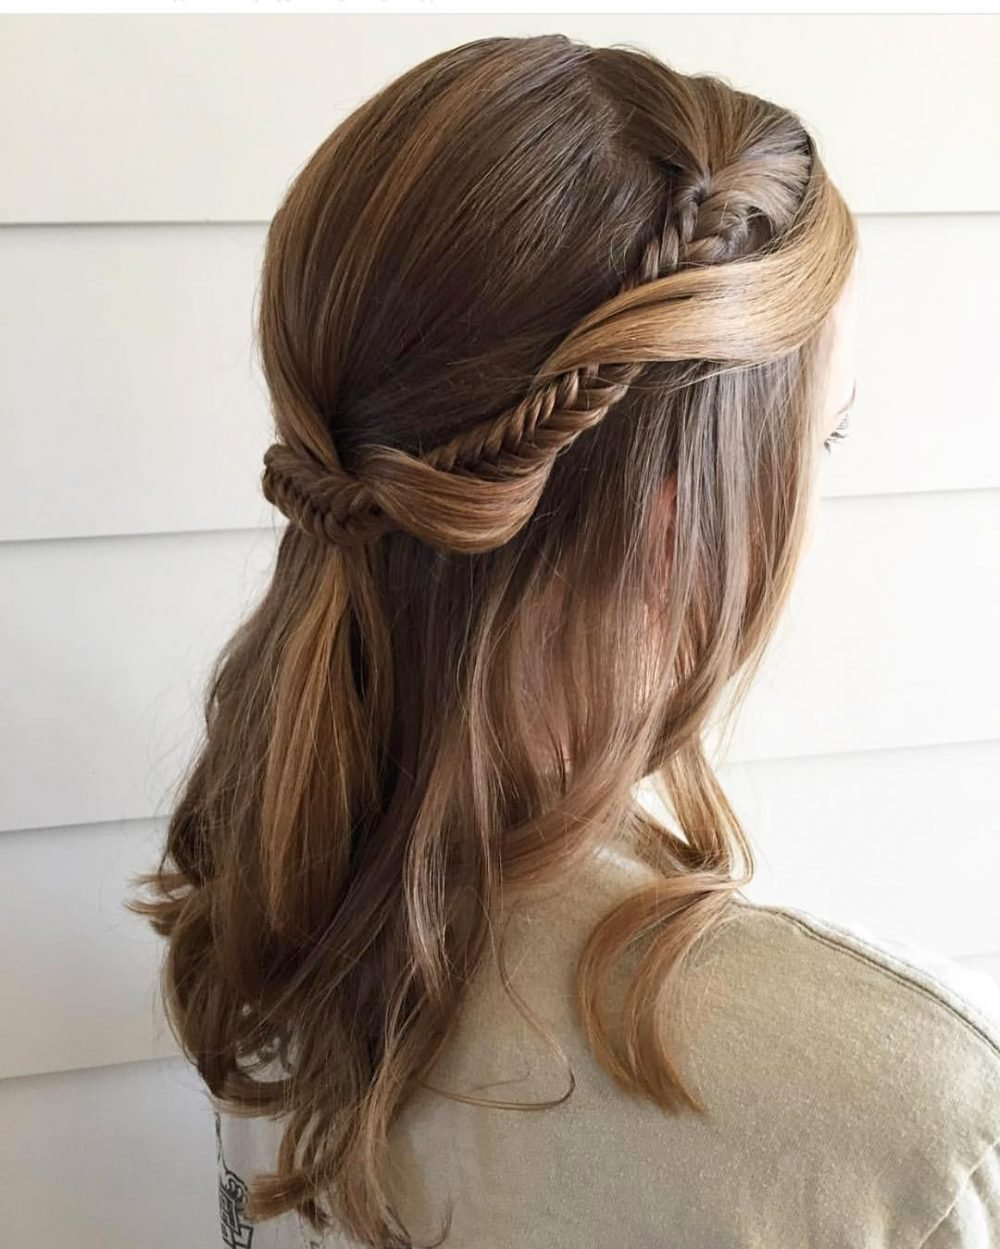 New 21 Super Easy Updos Anyone Can Do Trending In 2019 Ideas With Pictures